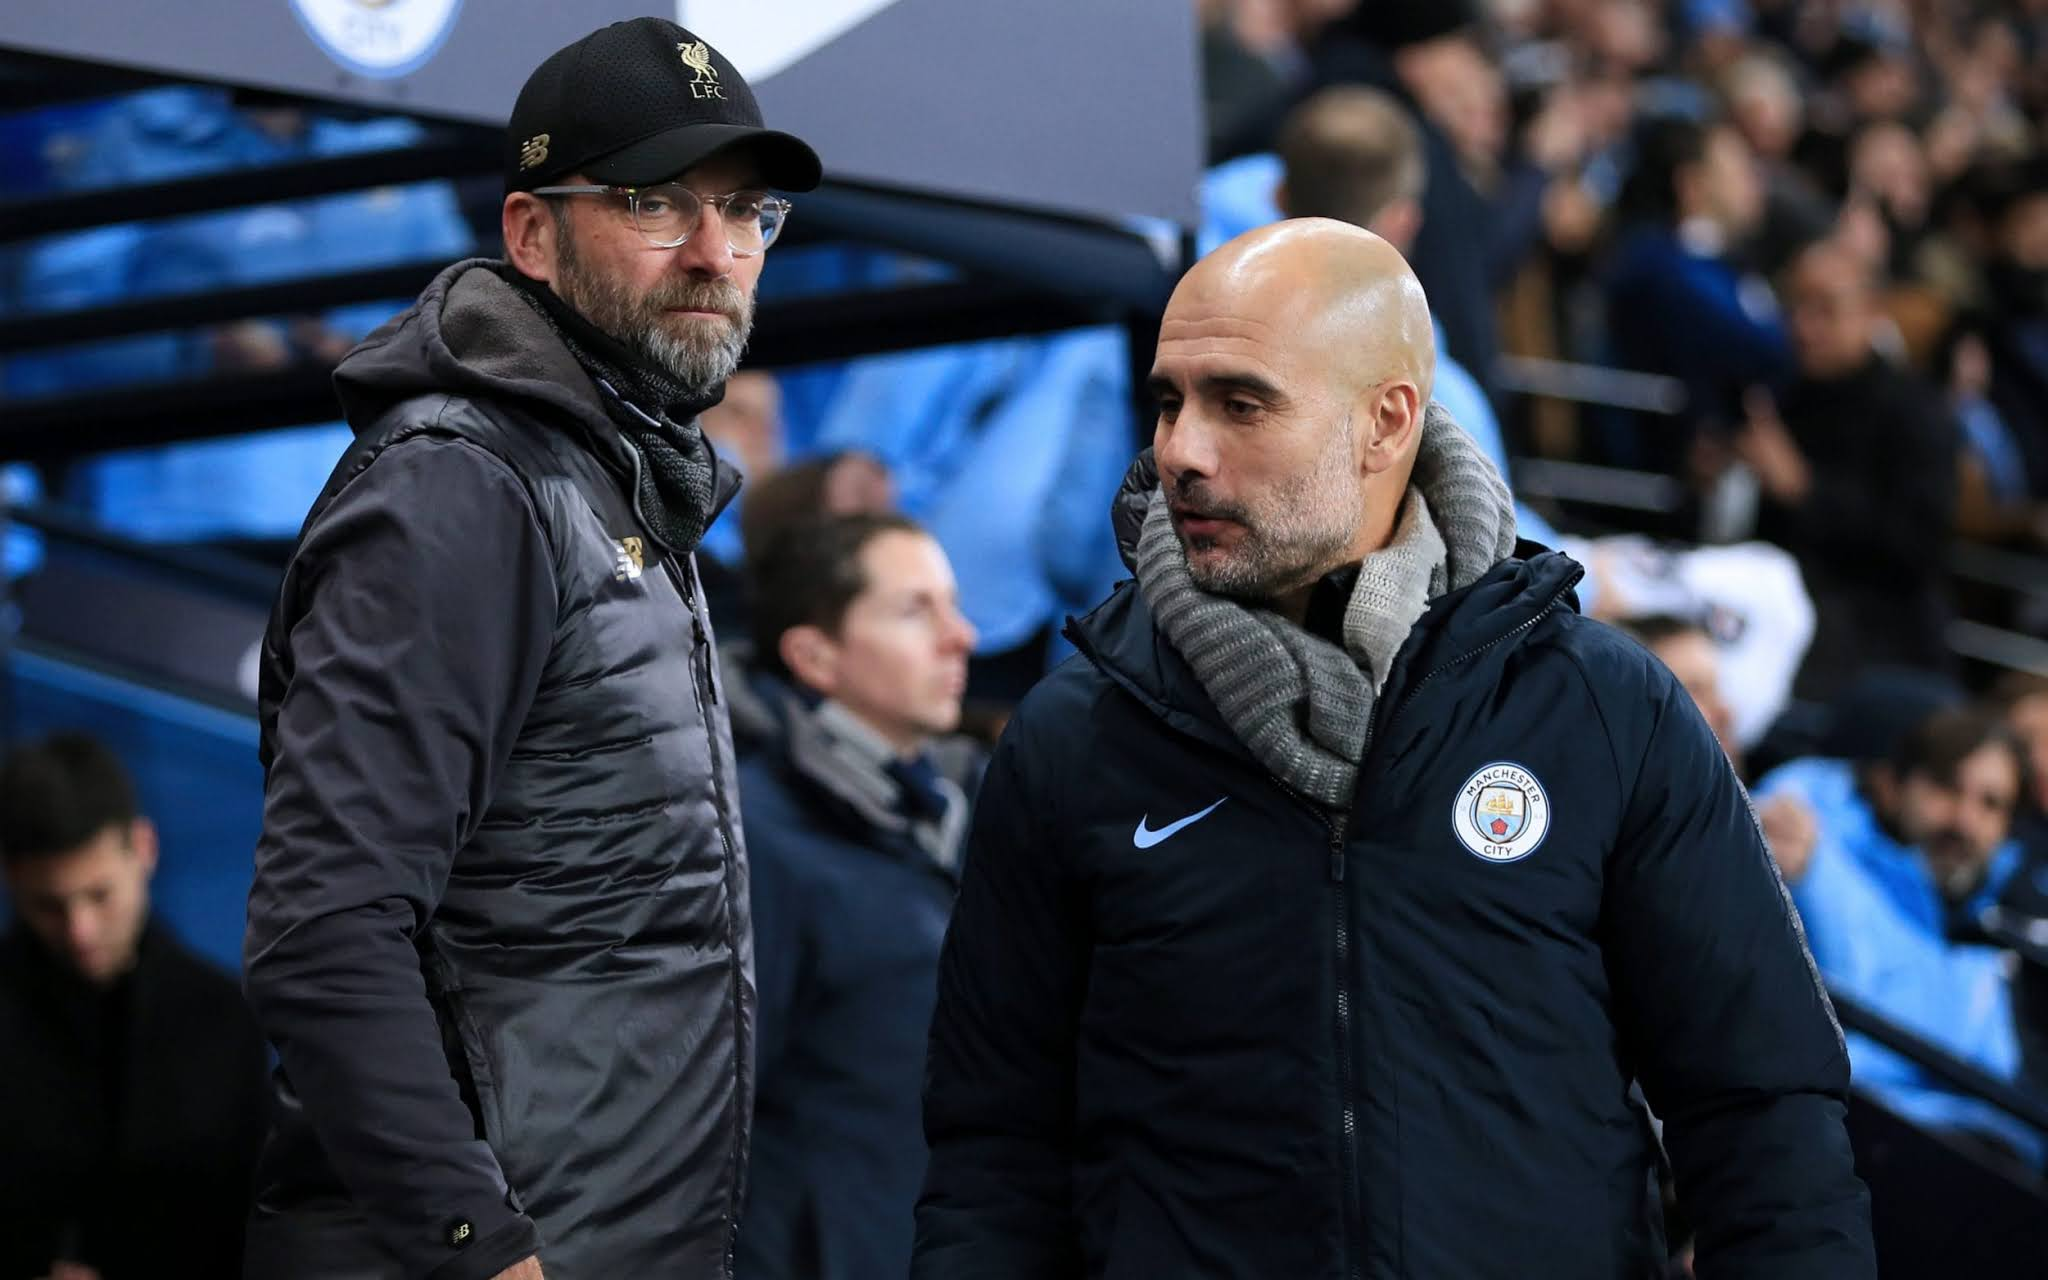 Jurgen Klopp and Pep Guardiola go toe-to-toe once again on Sunday in another heavyweight bout